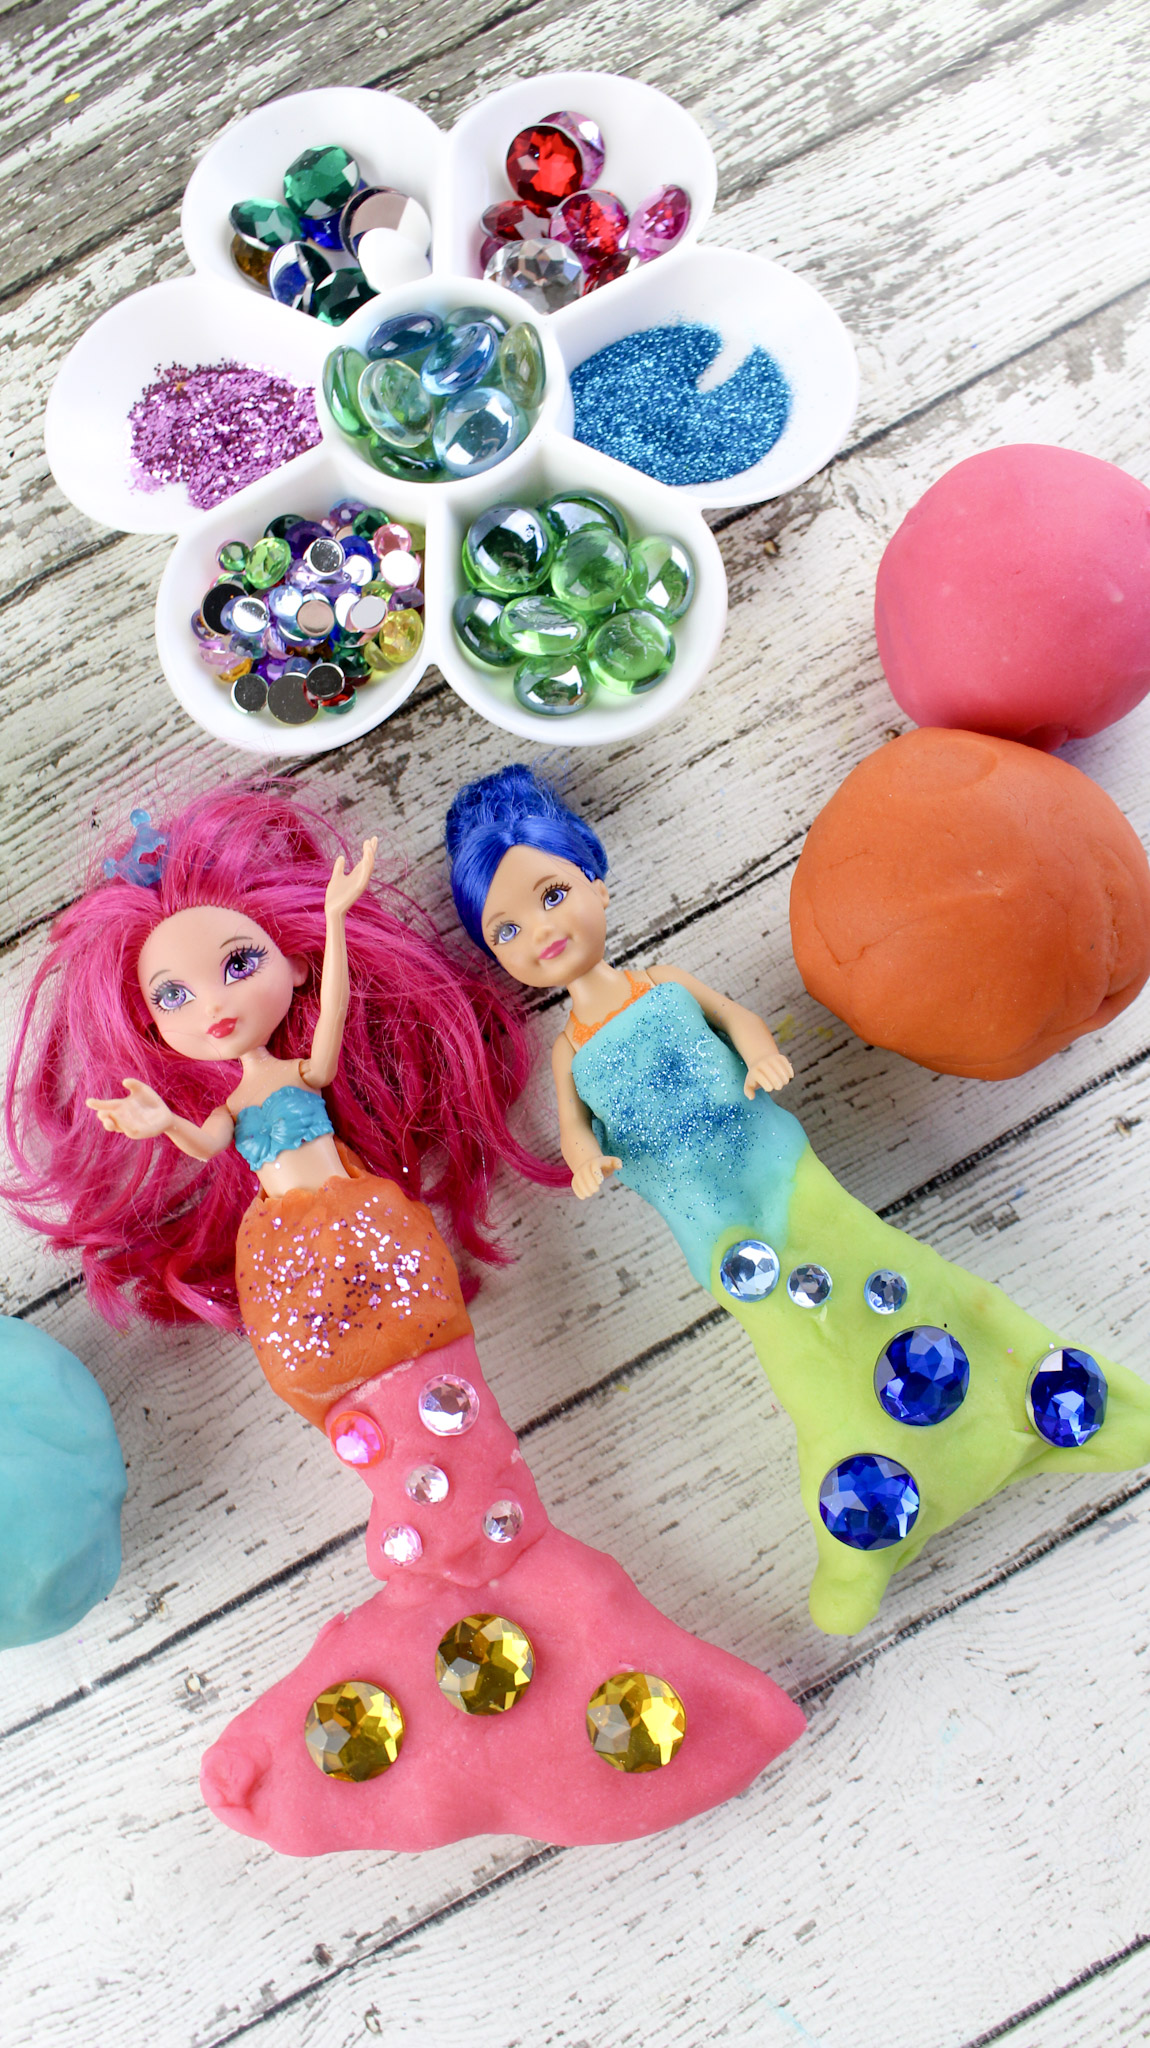 making mermaid play doh